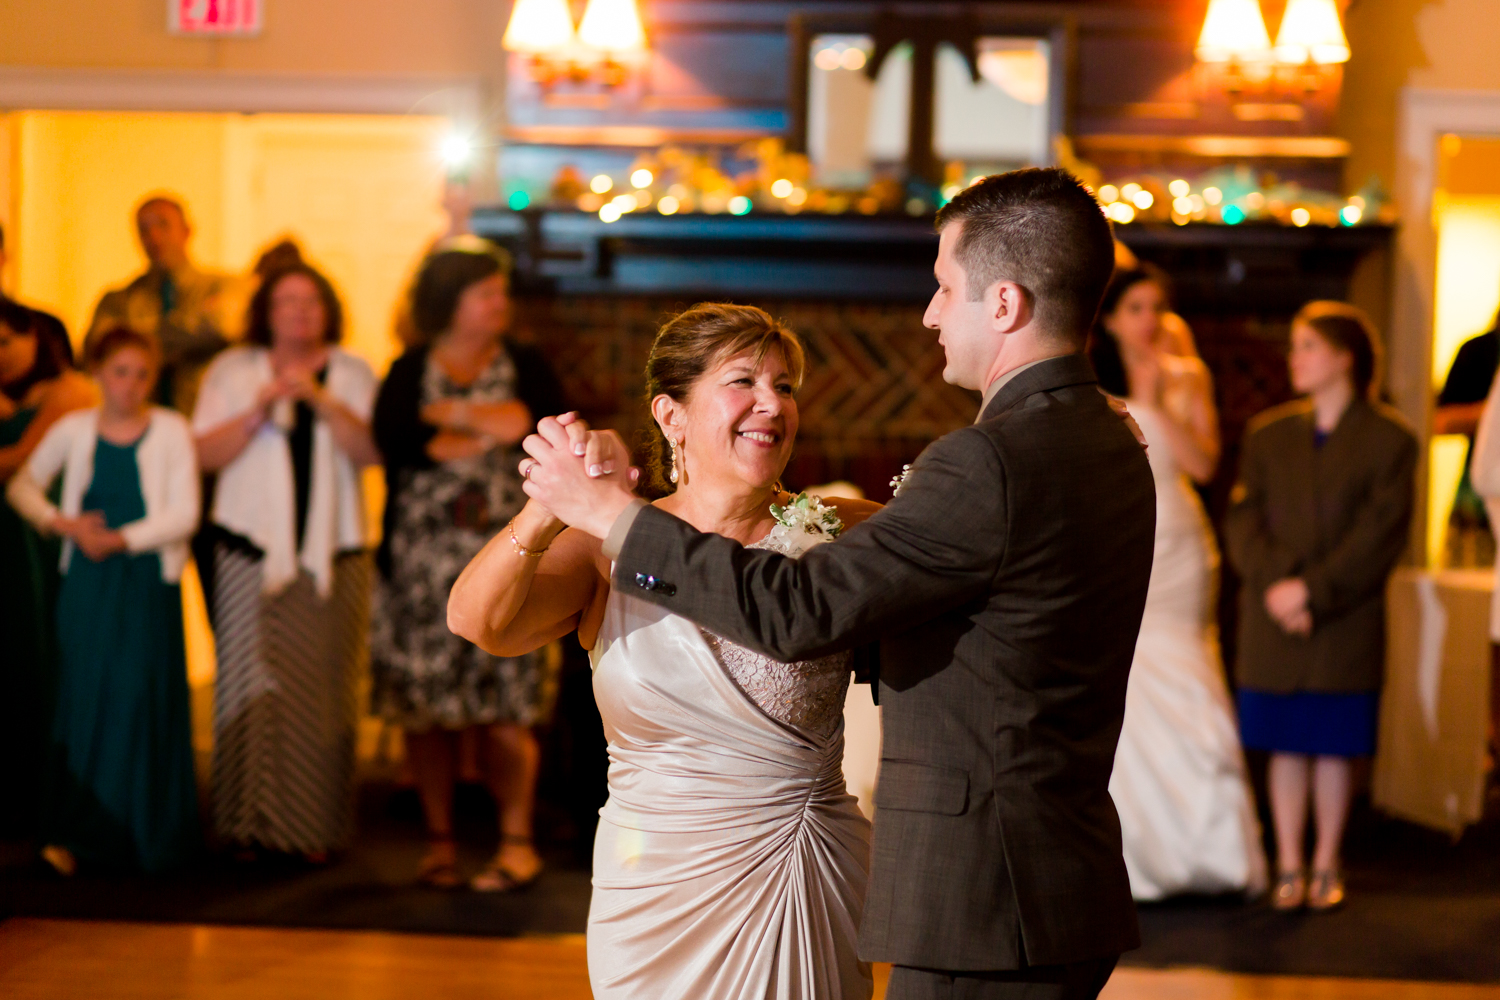 Mother and son dance at the wedding